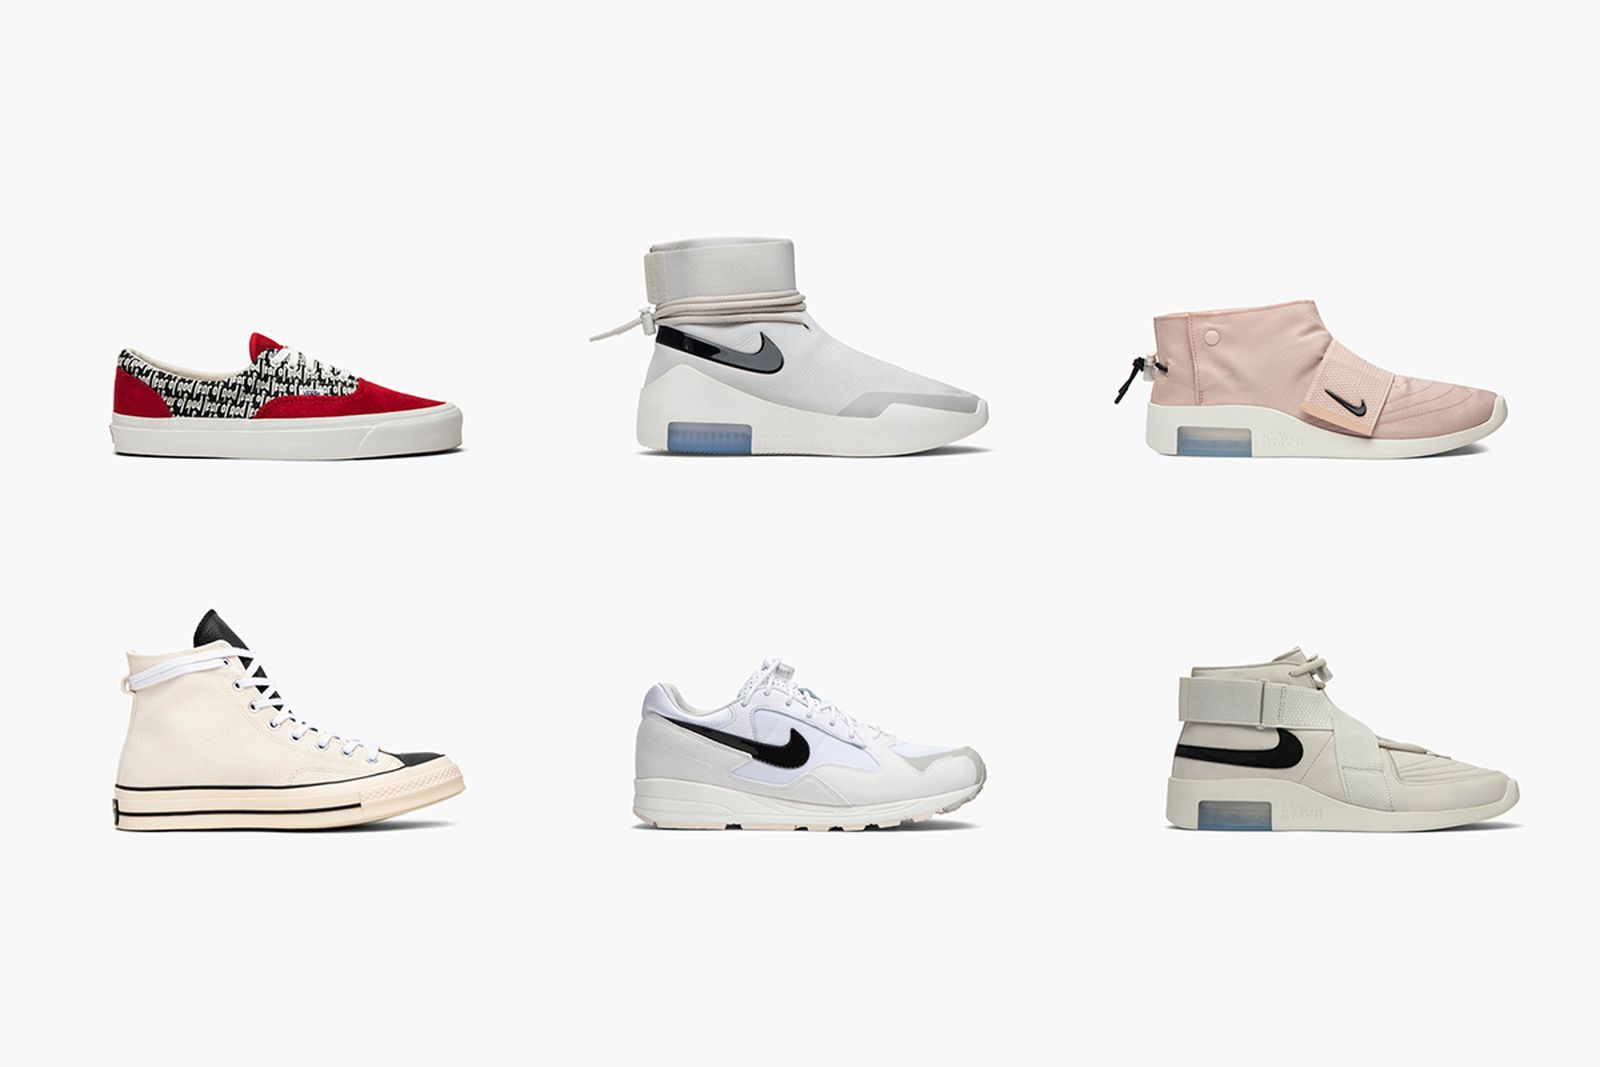 Querido matraz Proceso  Cop Our Favorite Fear of God Sneakers at GOAT